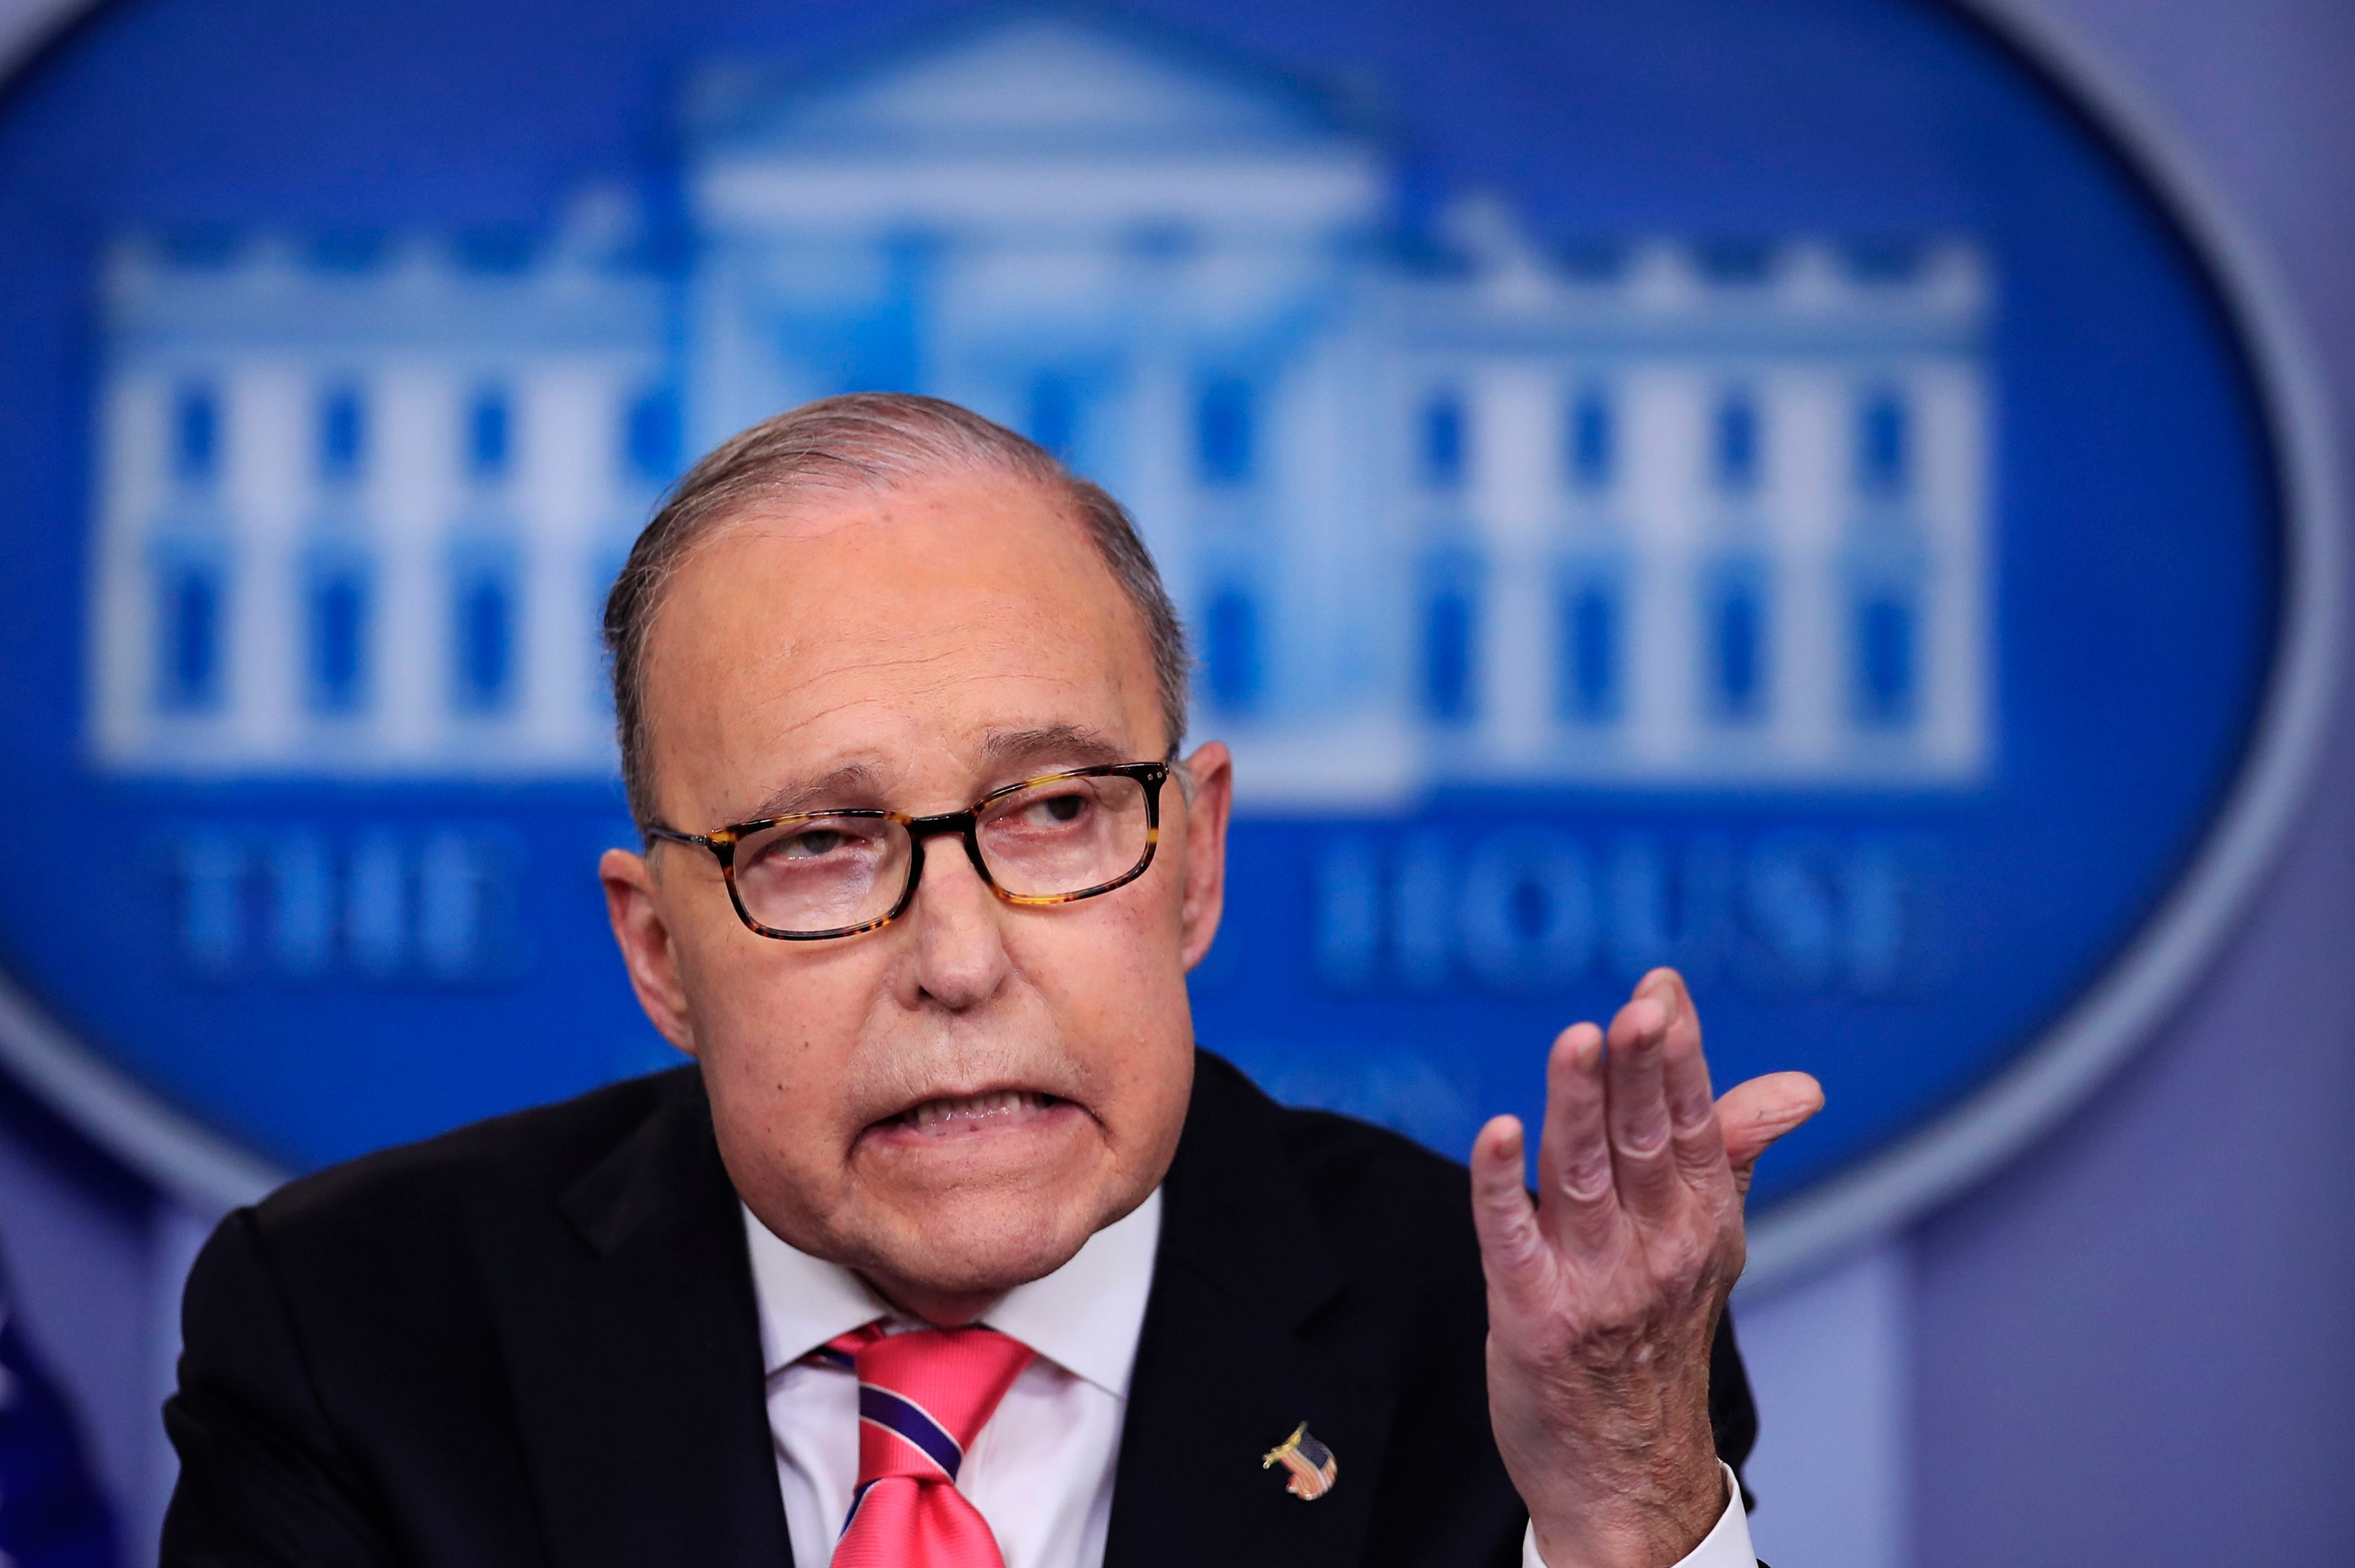 National Economic Council Director Larry Kudlow speaks to reporters during the daily press briefing at the White House